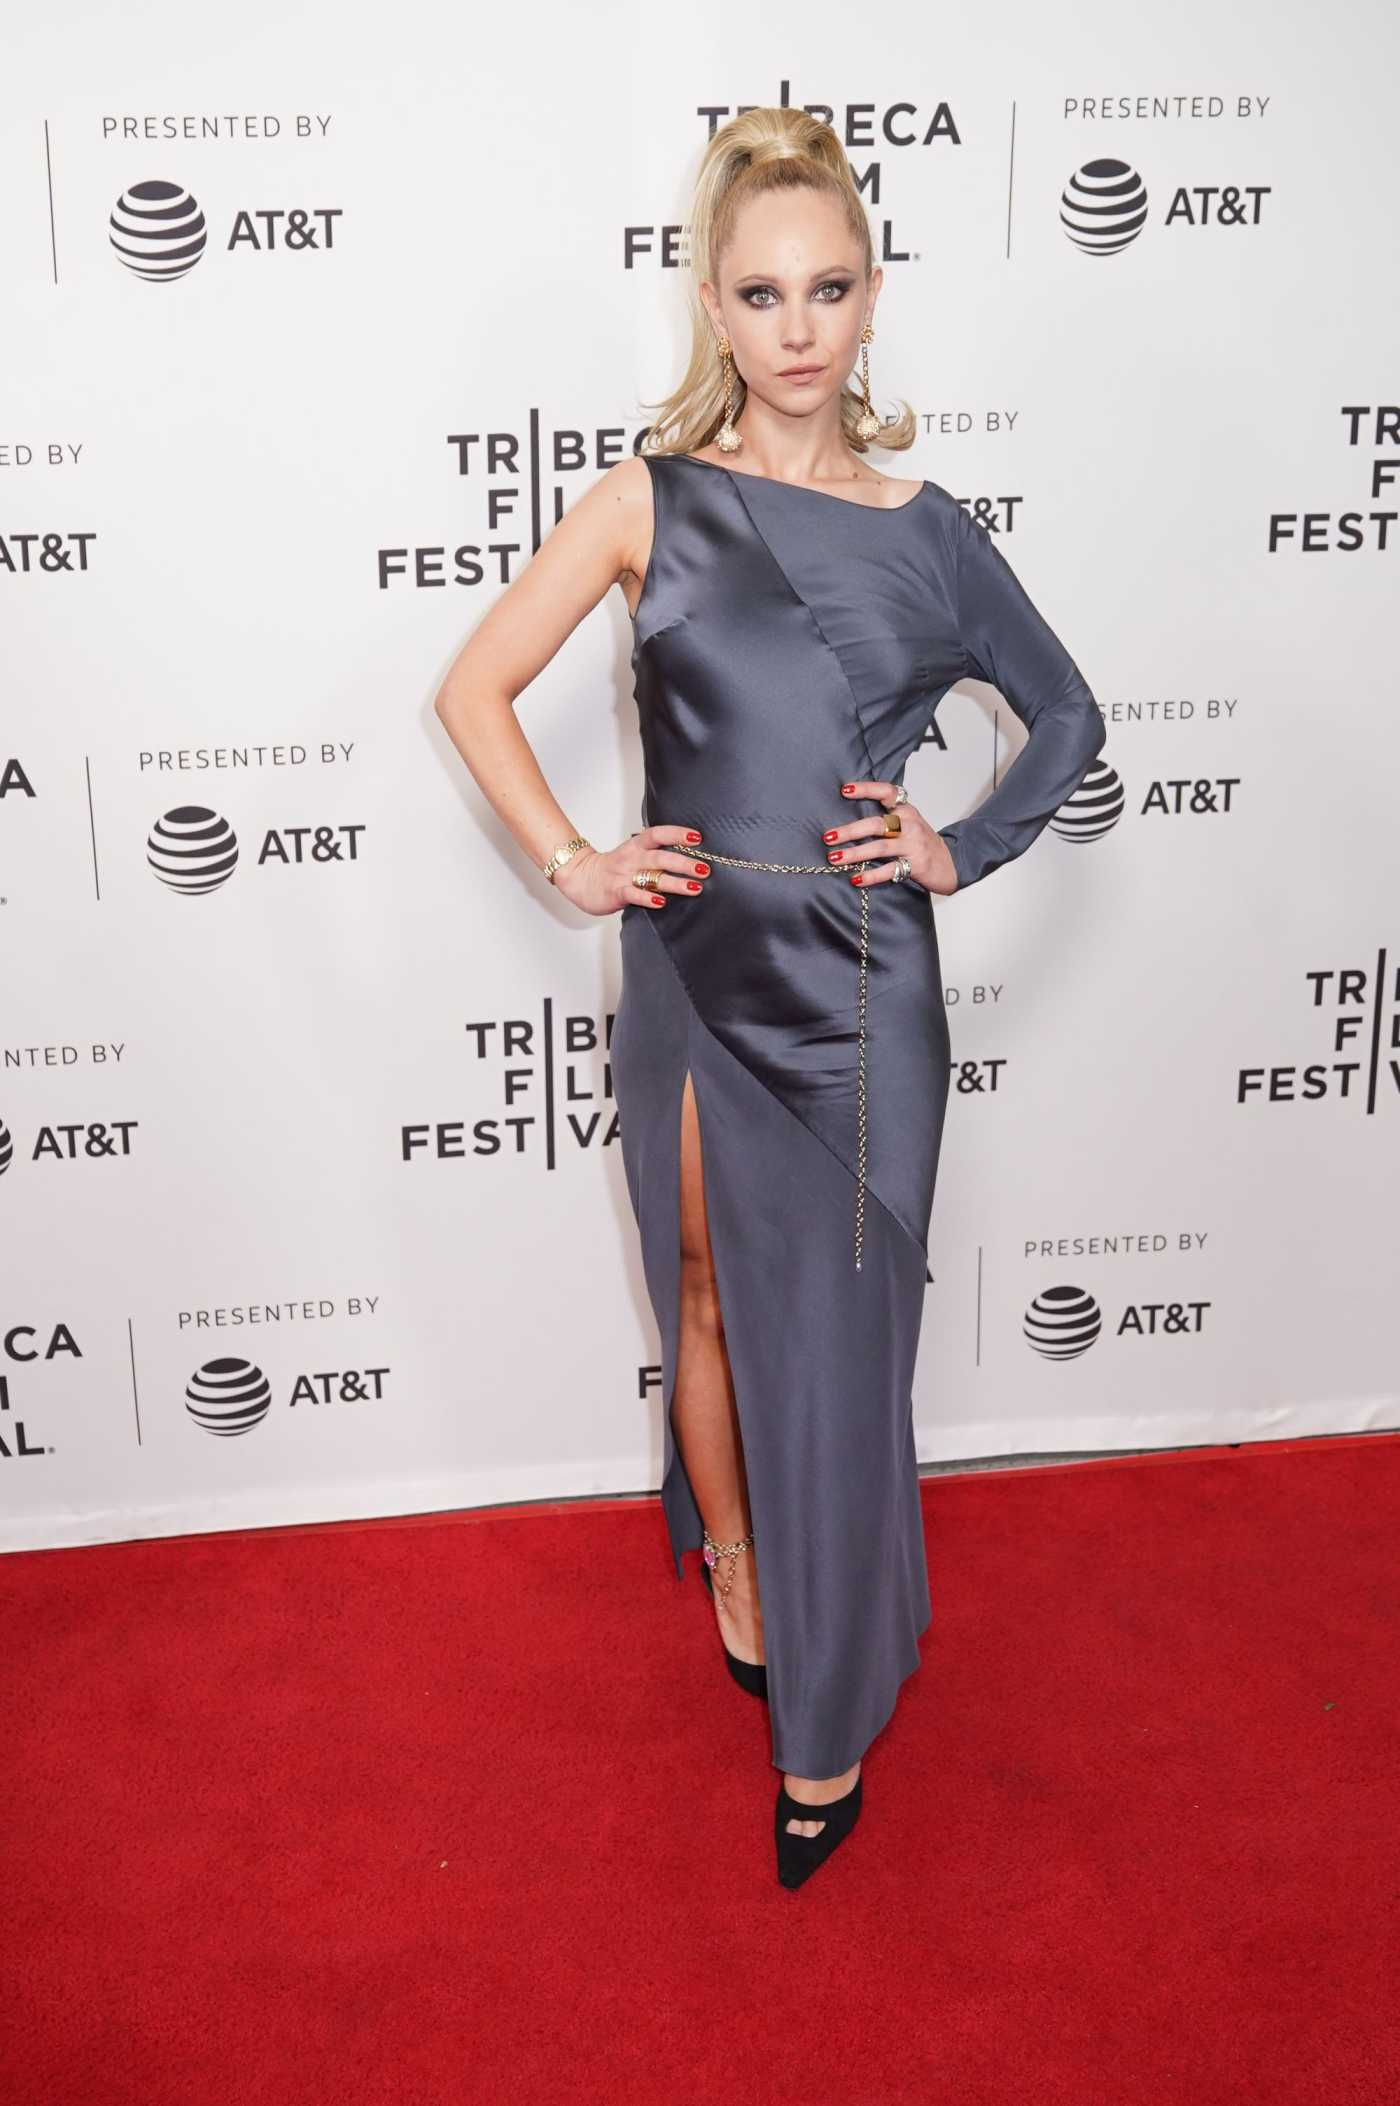 Juno Temple Attends the Lost Transmissions Premiere at Tribeca Film Festival in NYC 04/28/2019